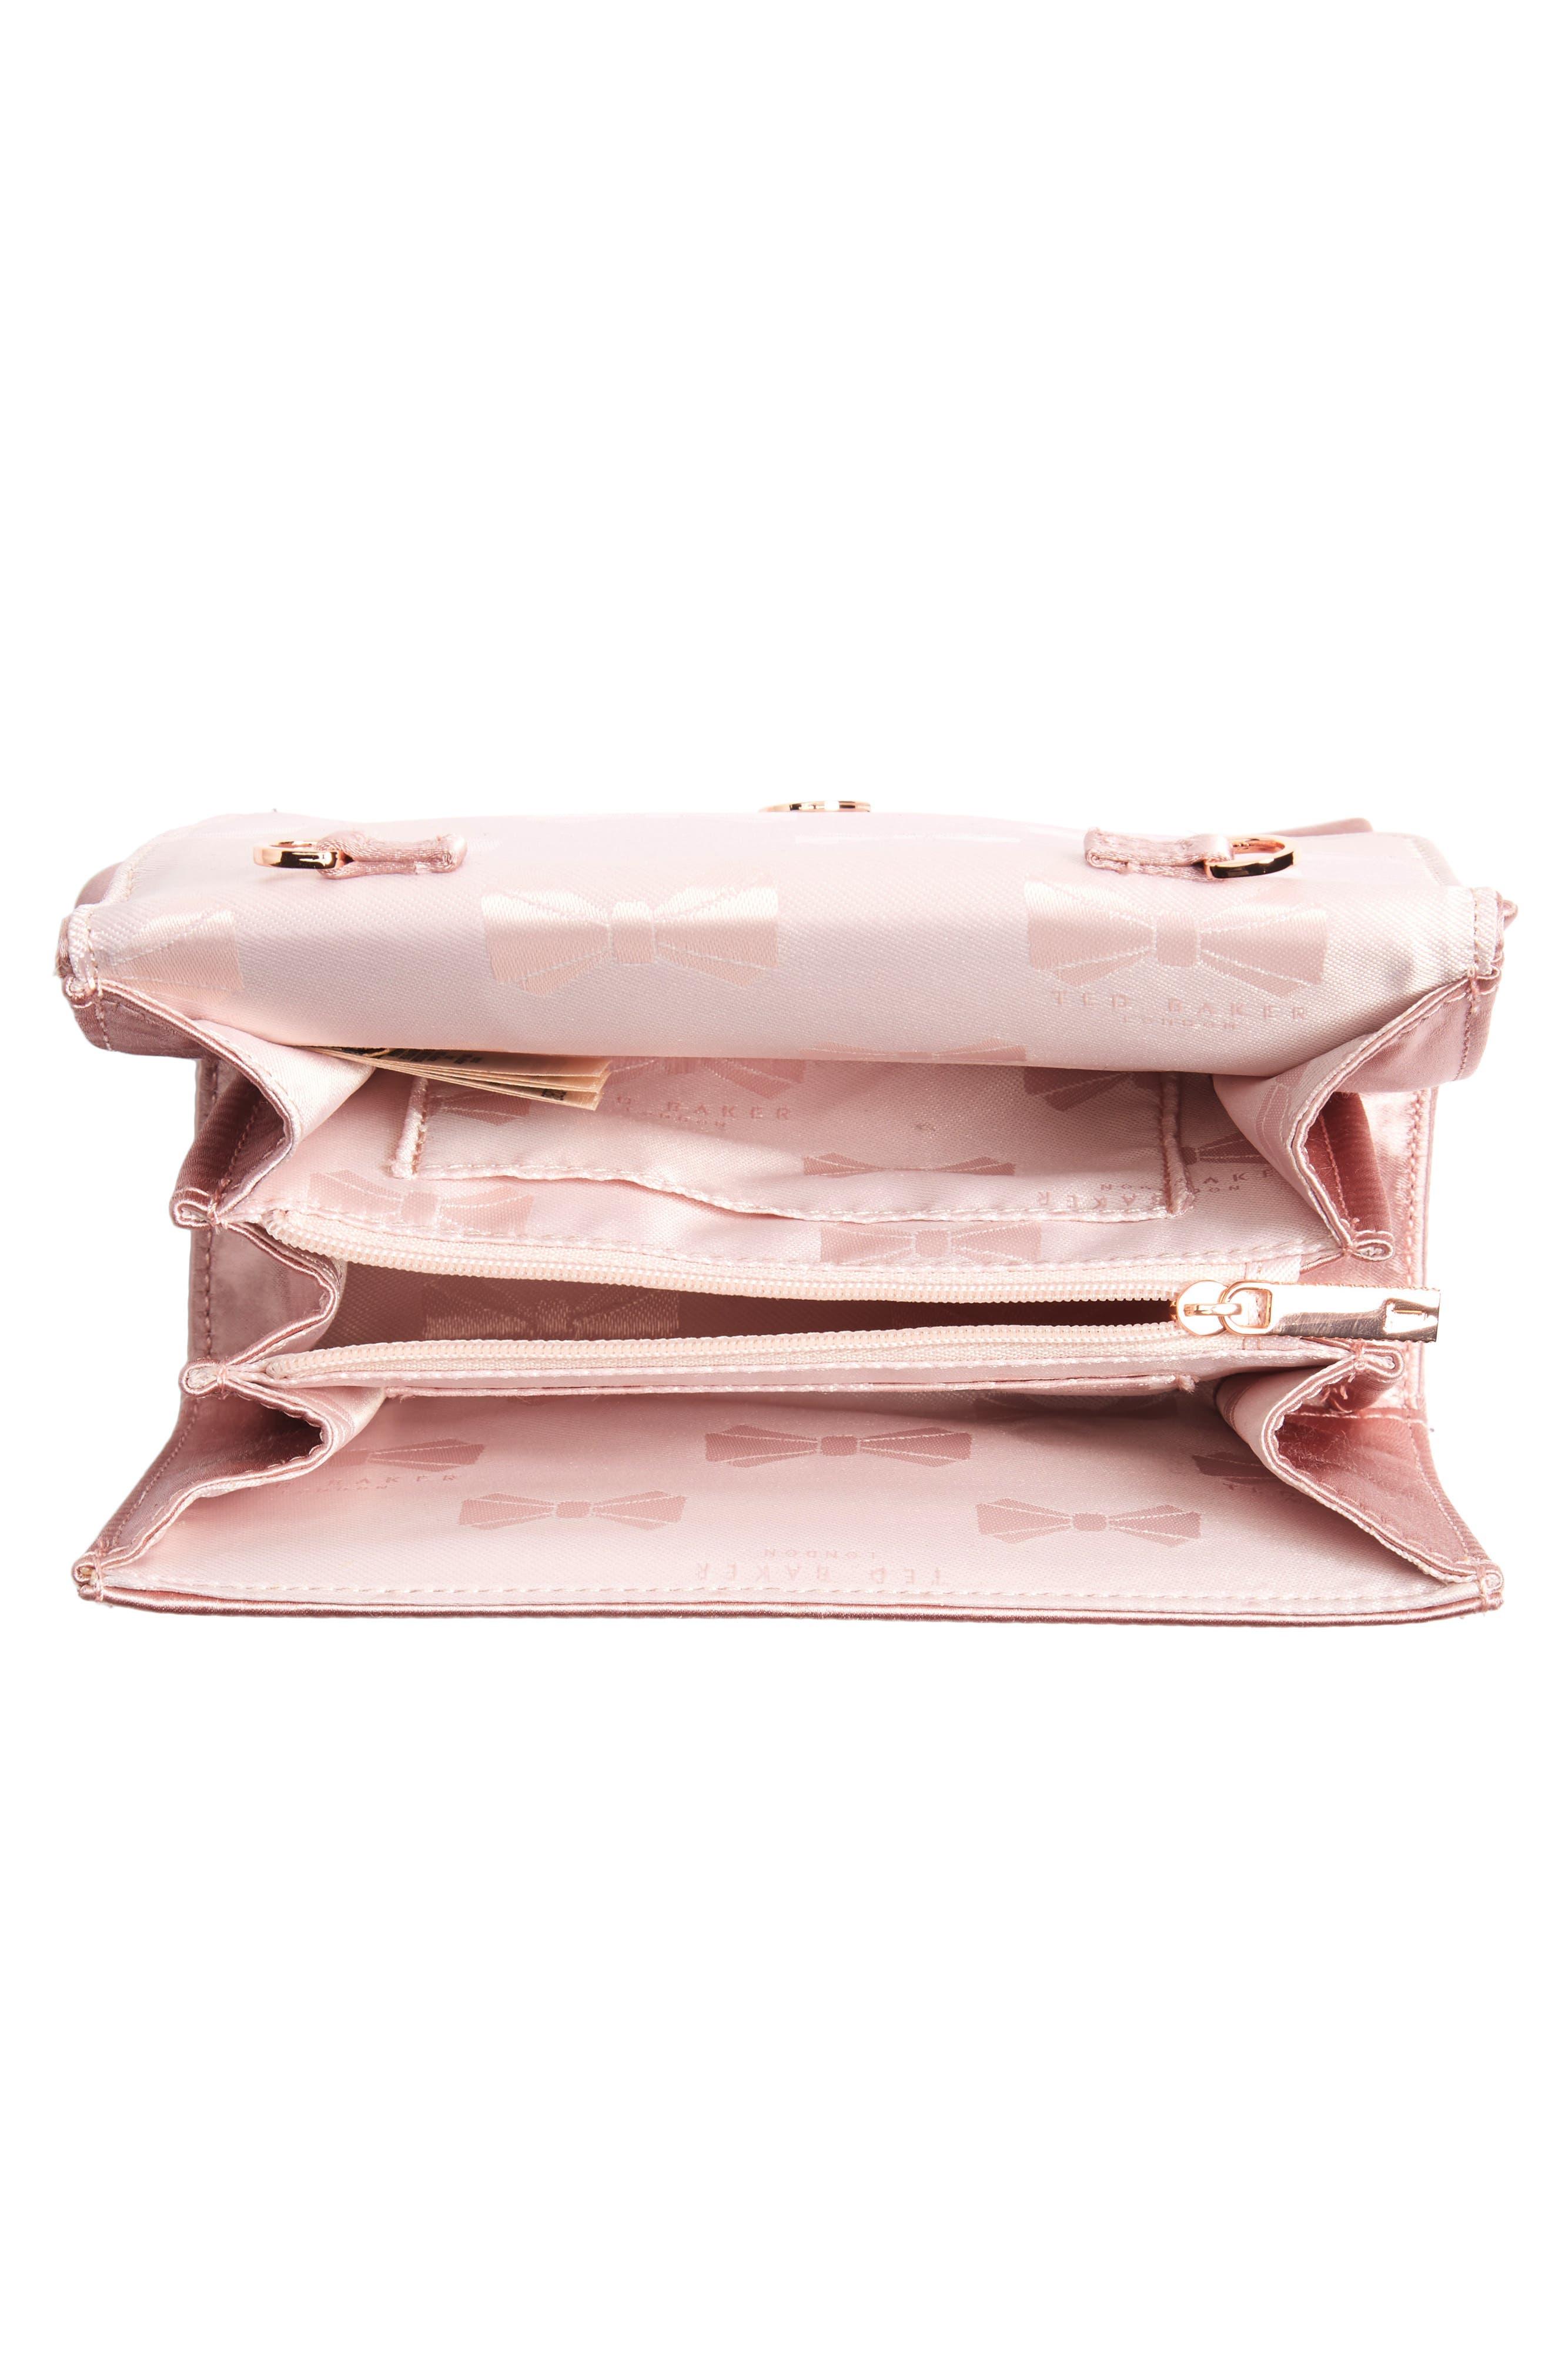 TED BAKER LONDON, Fefee Satin Knotted Bow Clutch, Alternate thumbnail 5, color, LIGHT PINK